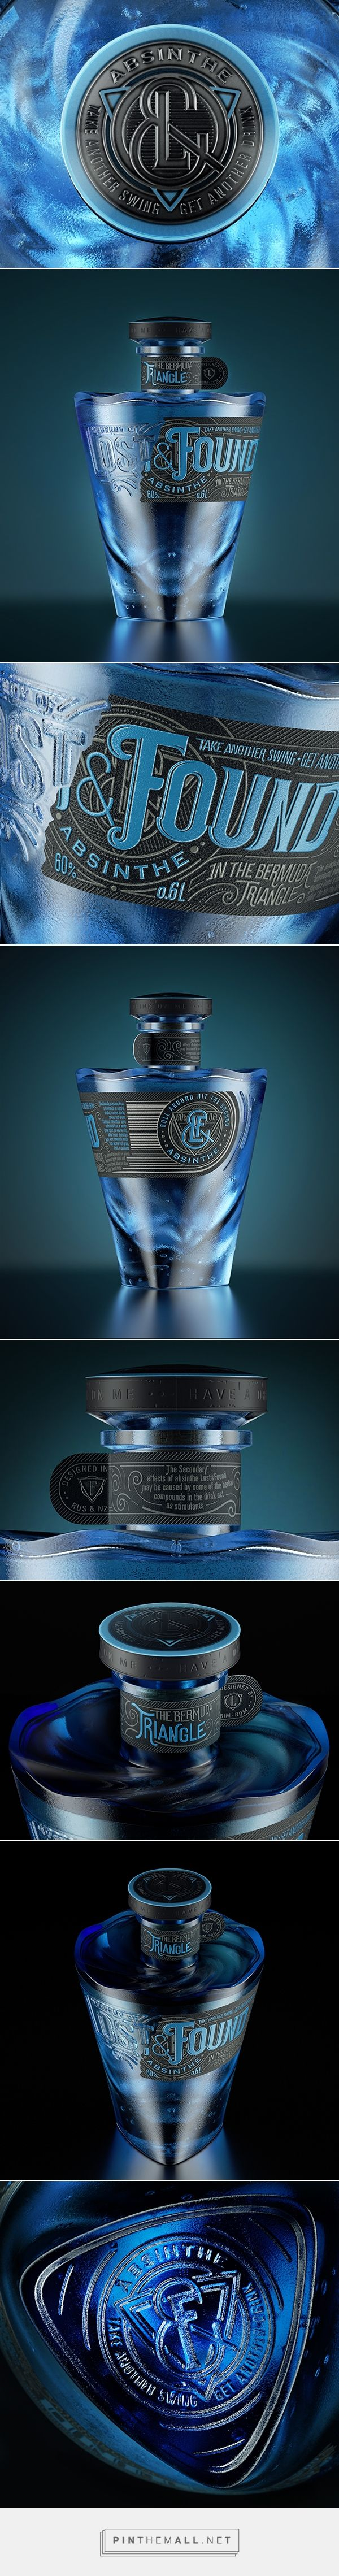 Lost&Found   Absinthe on Behance curated by Packaging Diva PD. How pretty is this absinthe packaging?